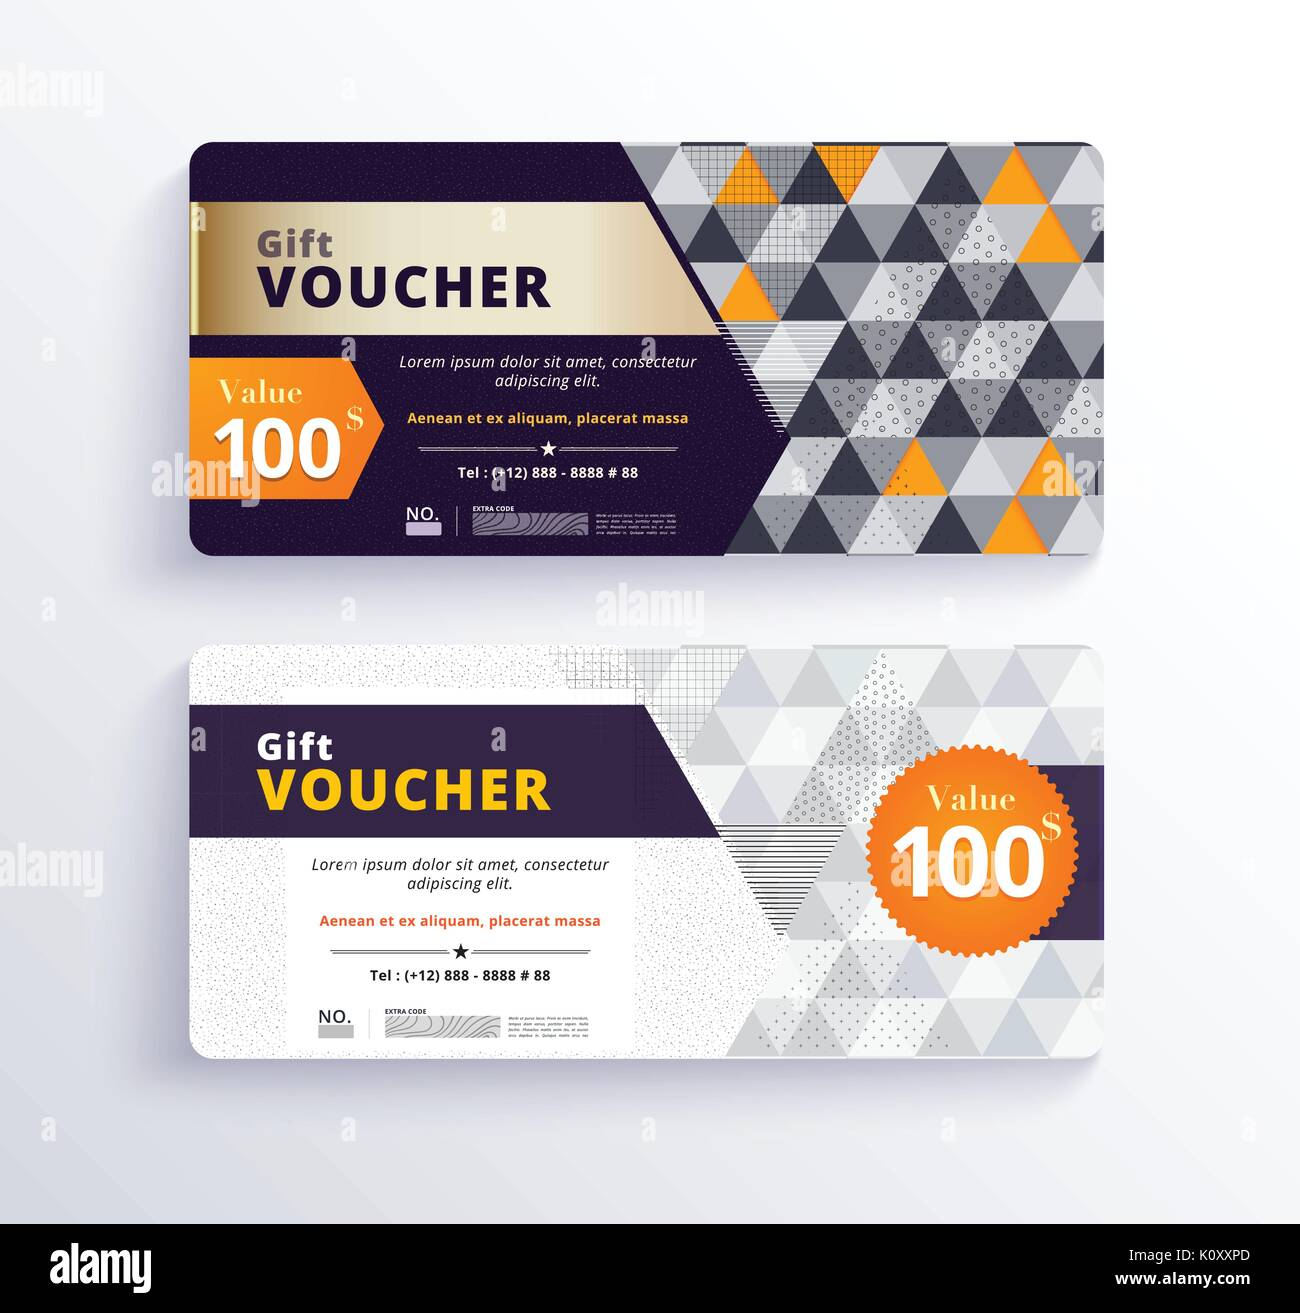 Business Gift Voucher Template Design With Geometric Concept. White And  Gold Color. Vector Illustration  Business Voucher Template